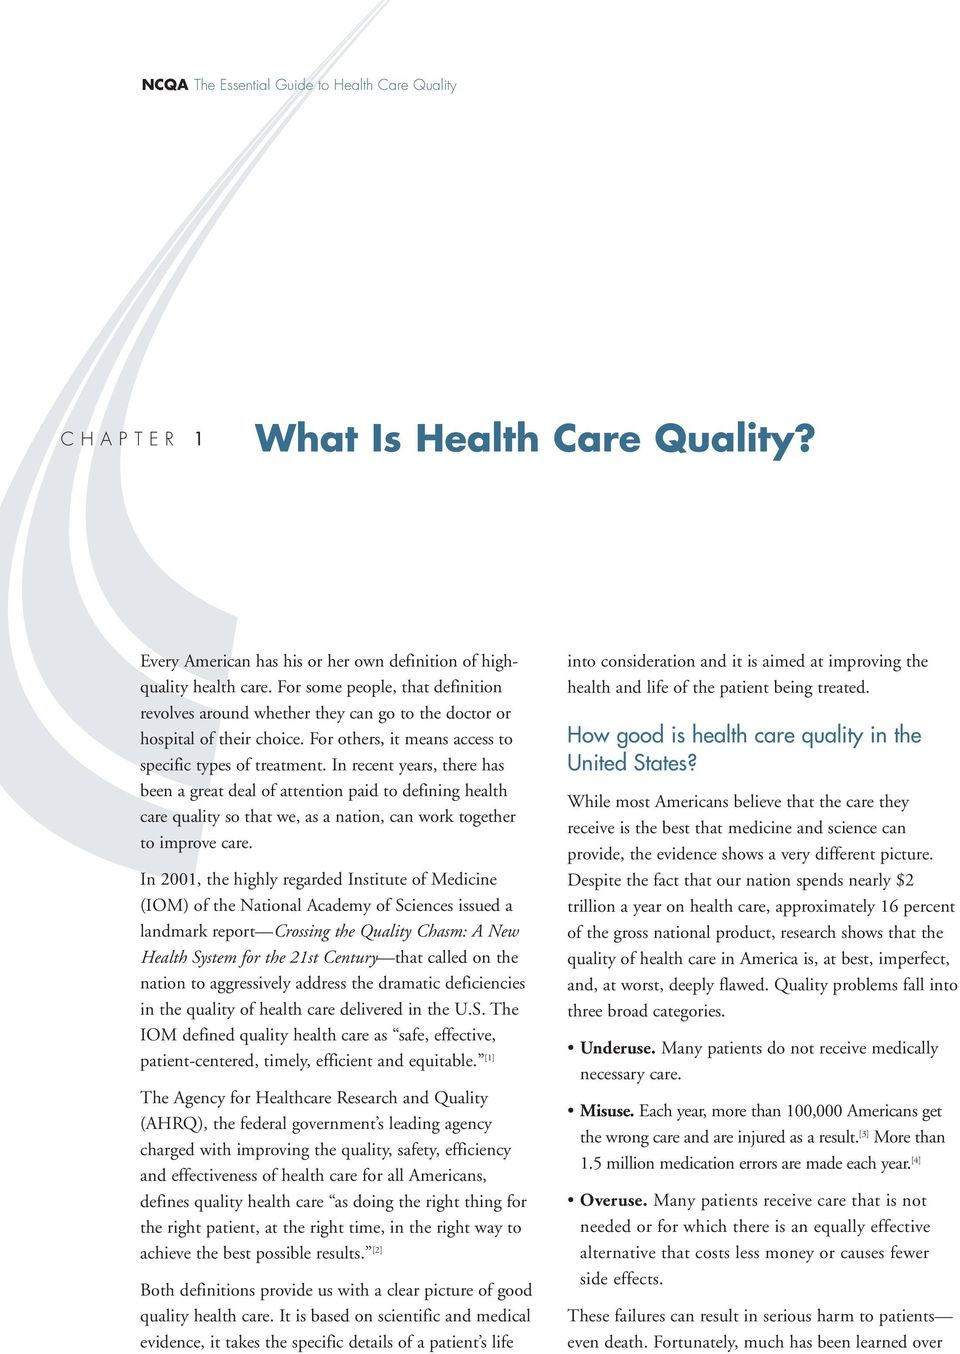 In recent years, there has been a great deal of attention paid to defining health care quality so that we, as a nation, can work together to improve care.